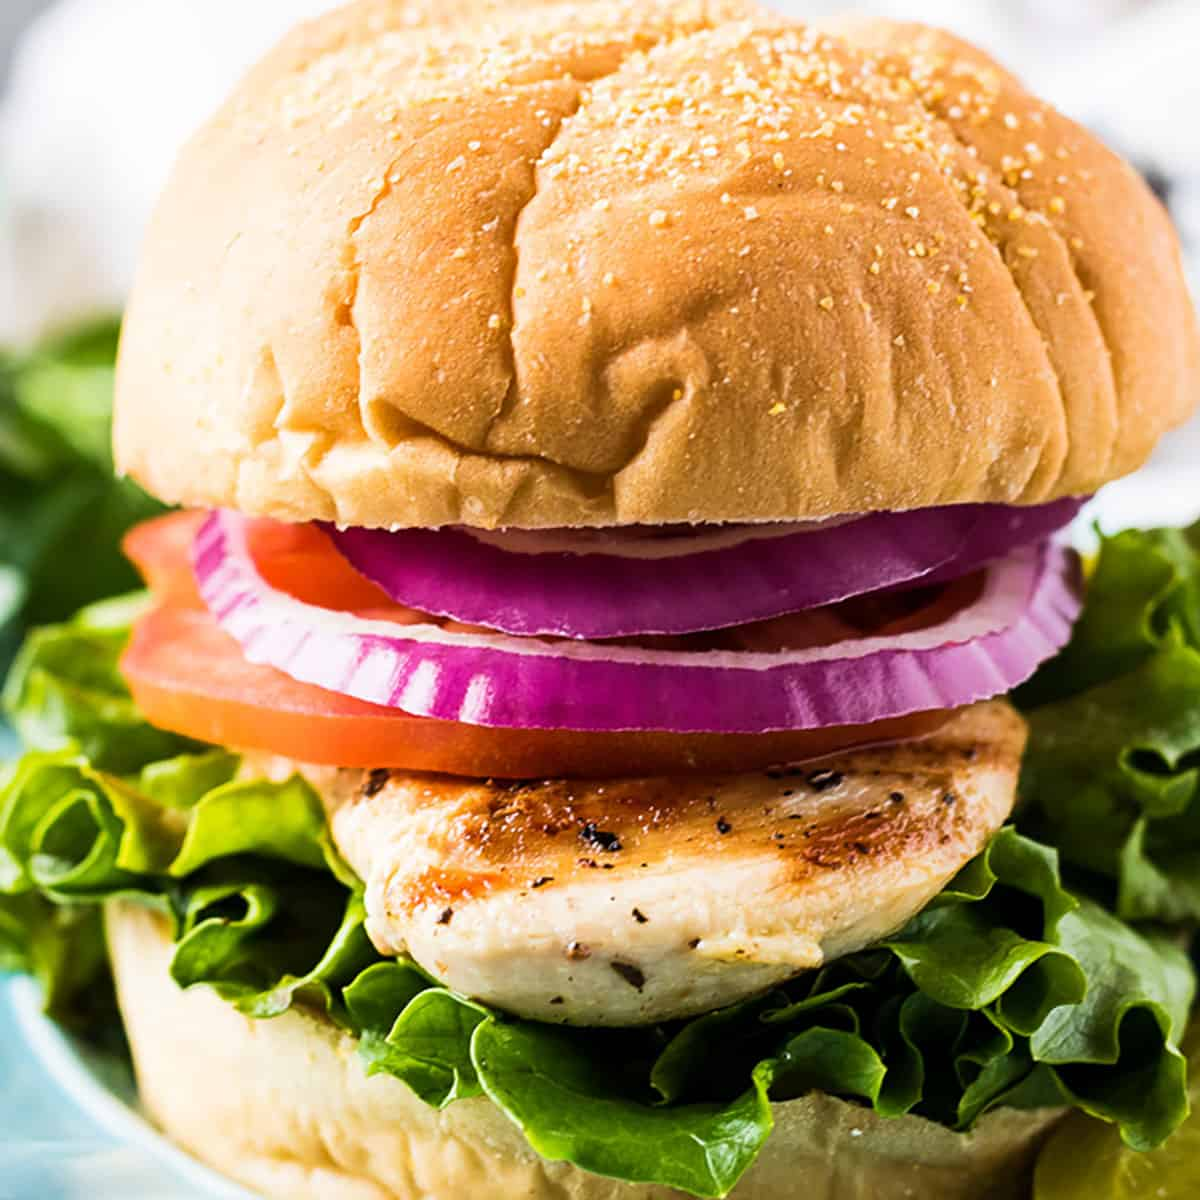 Grilled chicken sandwich with lettuce, tomato, and onion on a Kaiser roll.